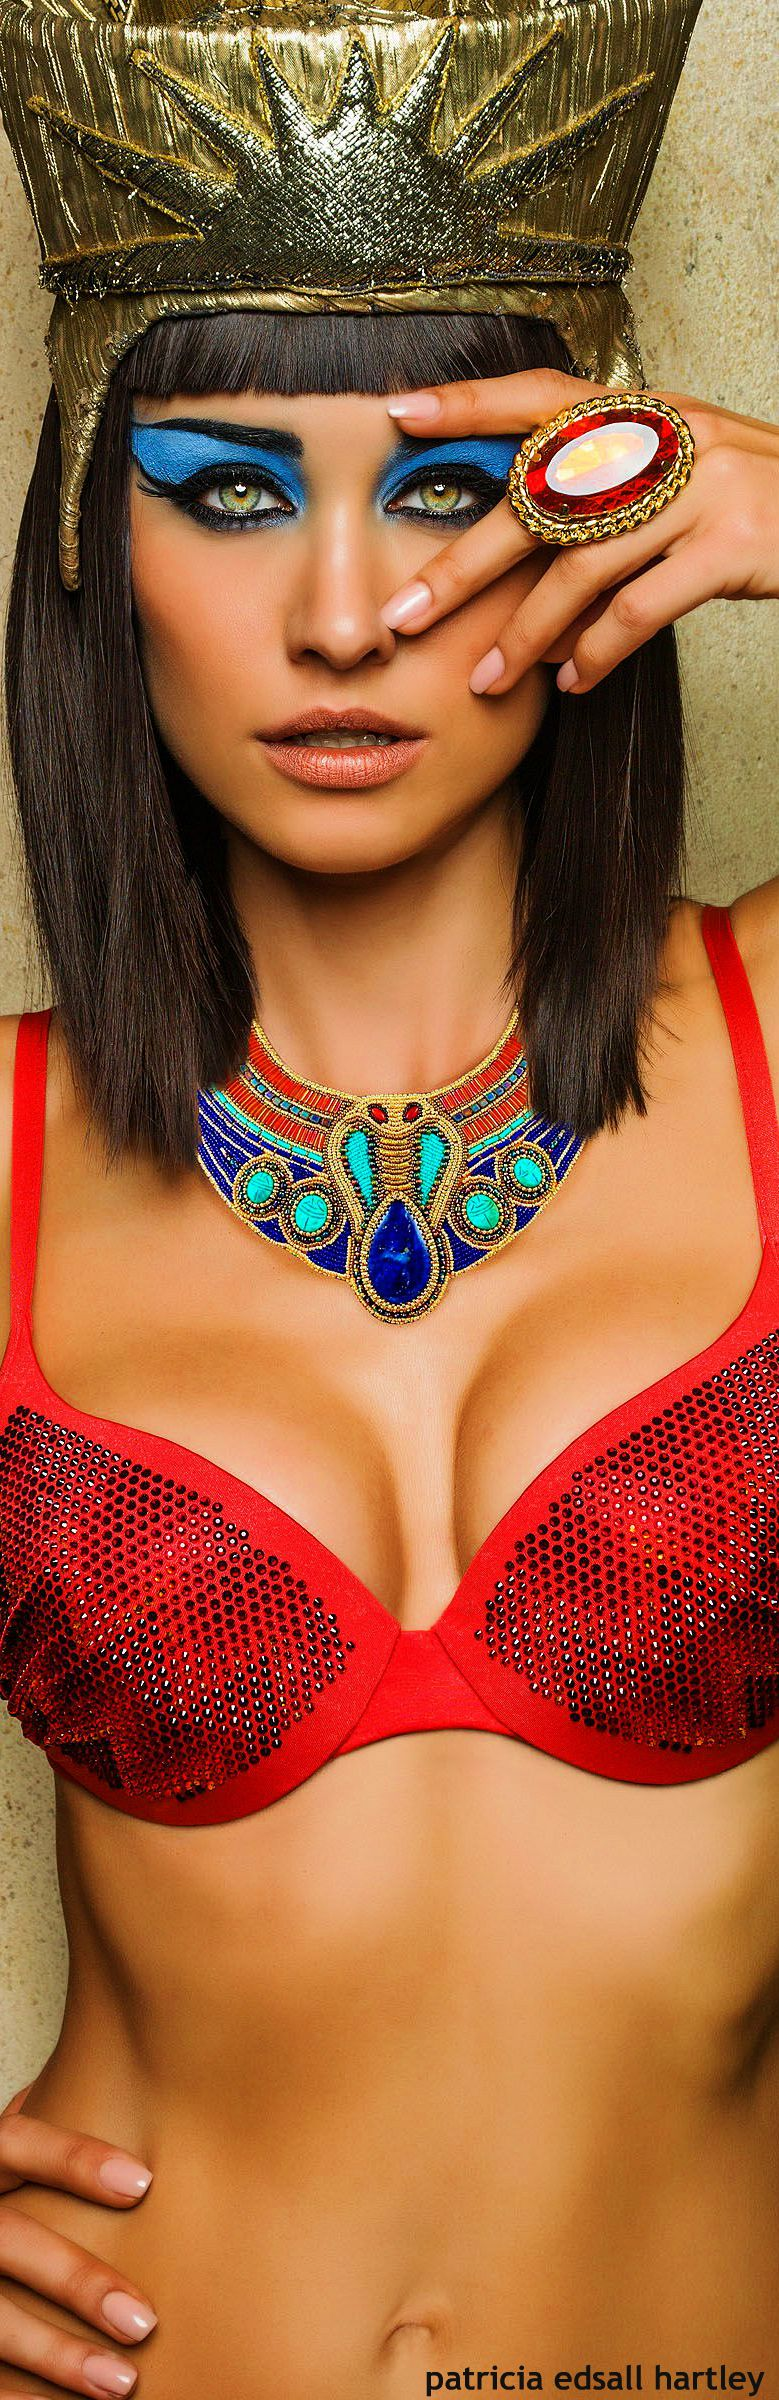 Egyptian Goddess Cleopatra Bikini - Egyptian Style - Egypt Inspired Fashion